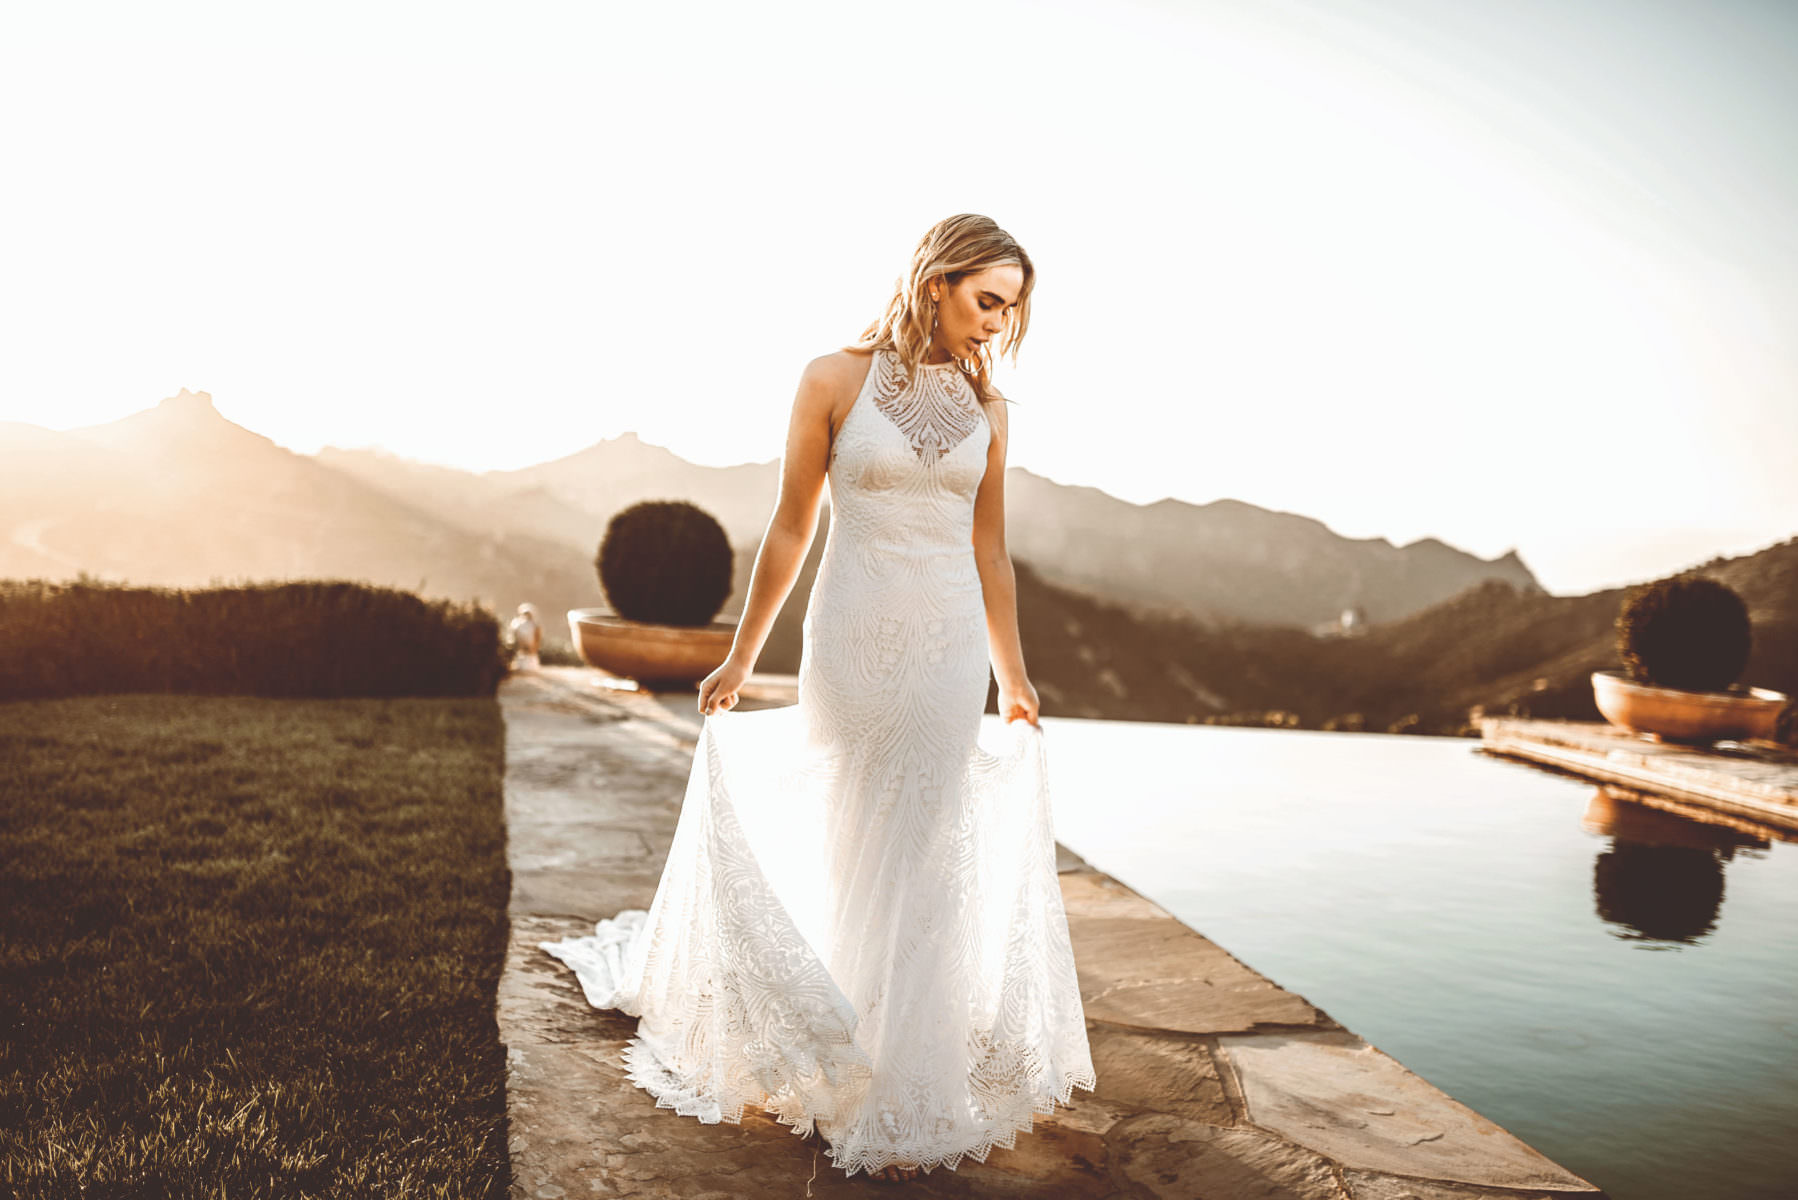 Phoenix wedding dress lovers society paperswan bride wellington christchurch